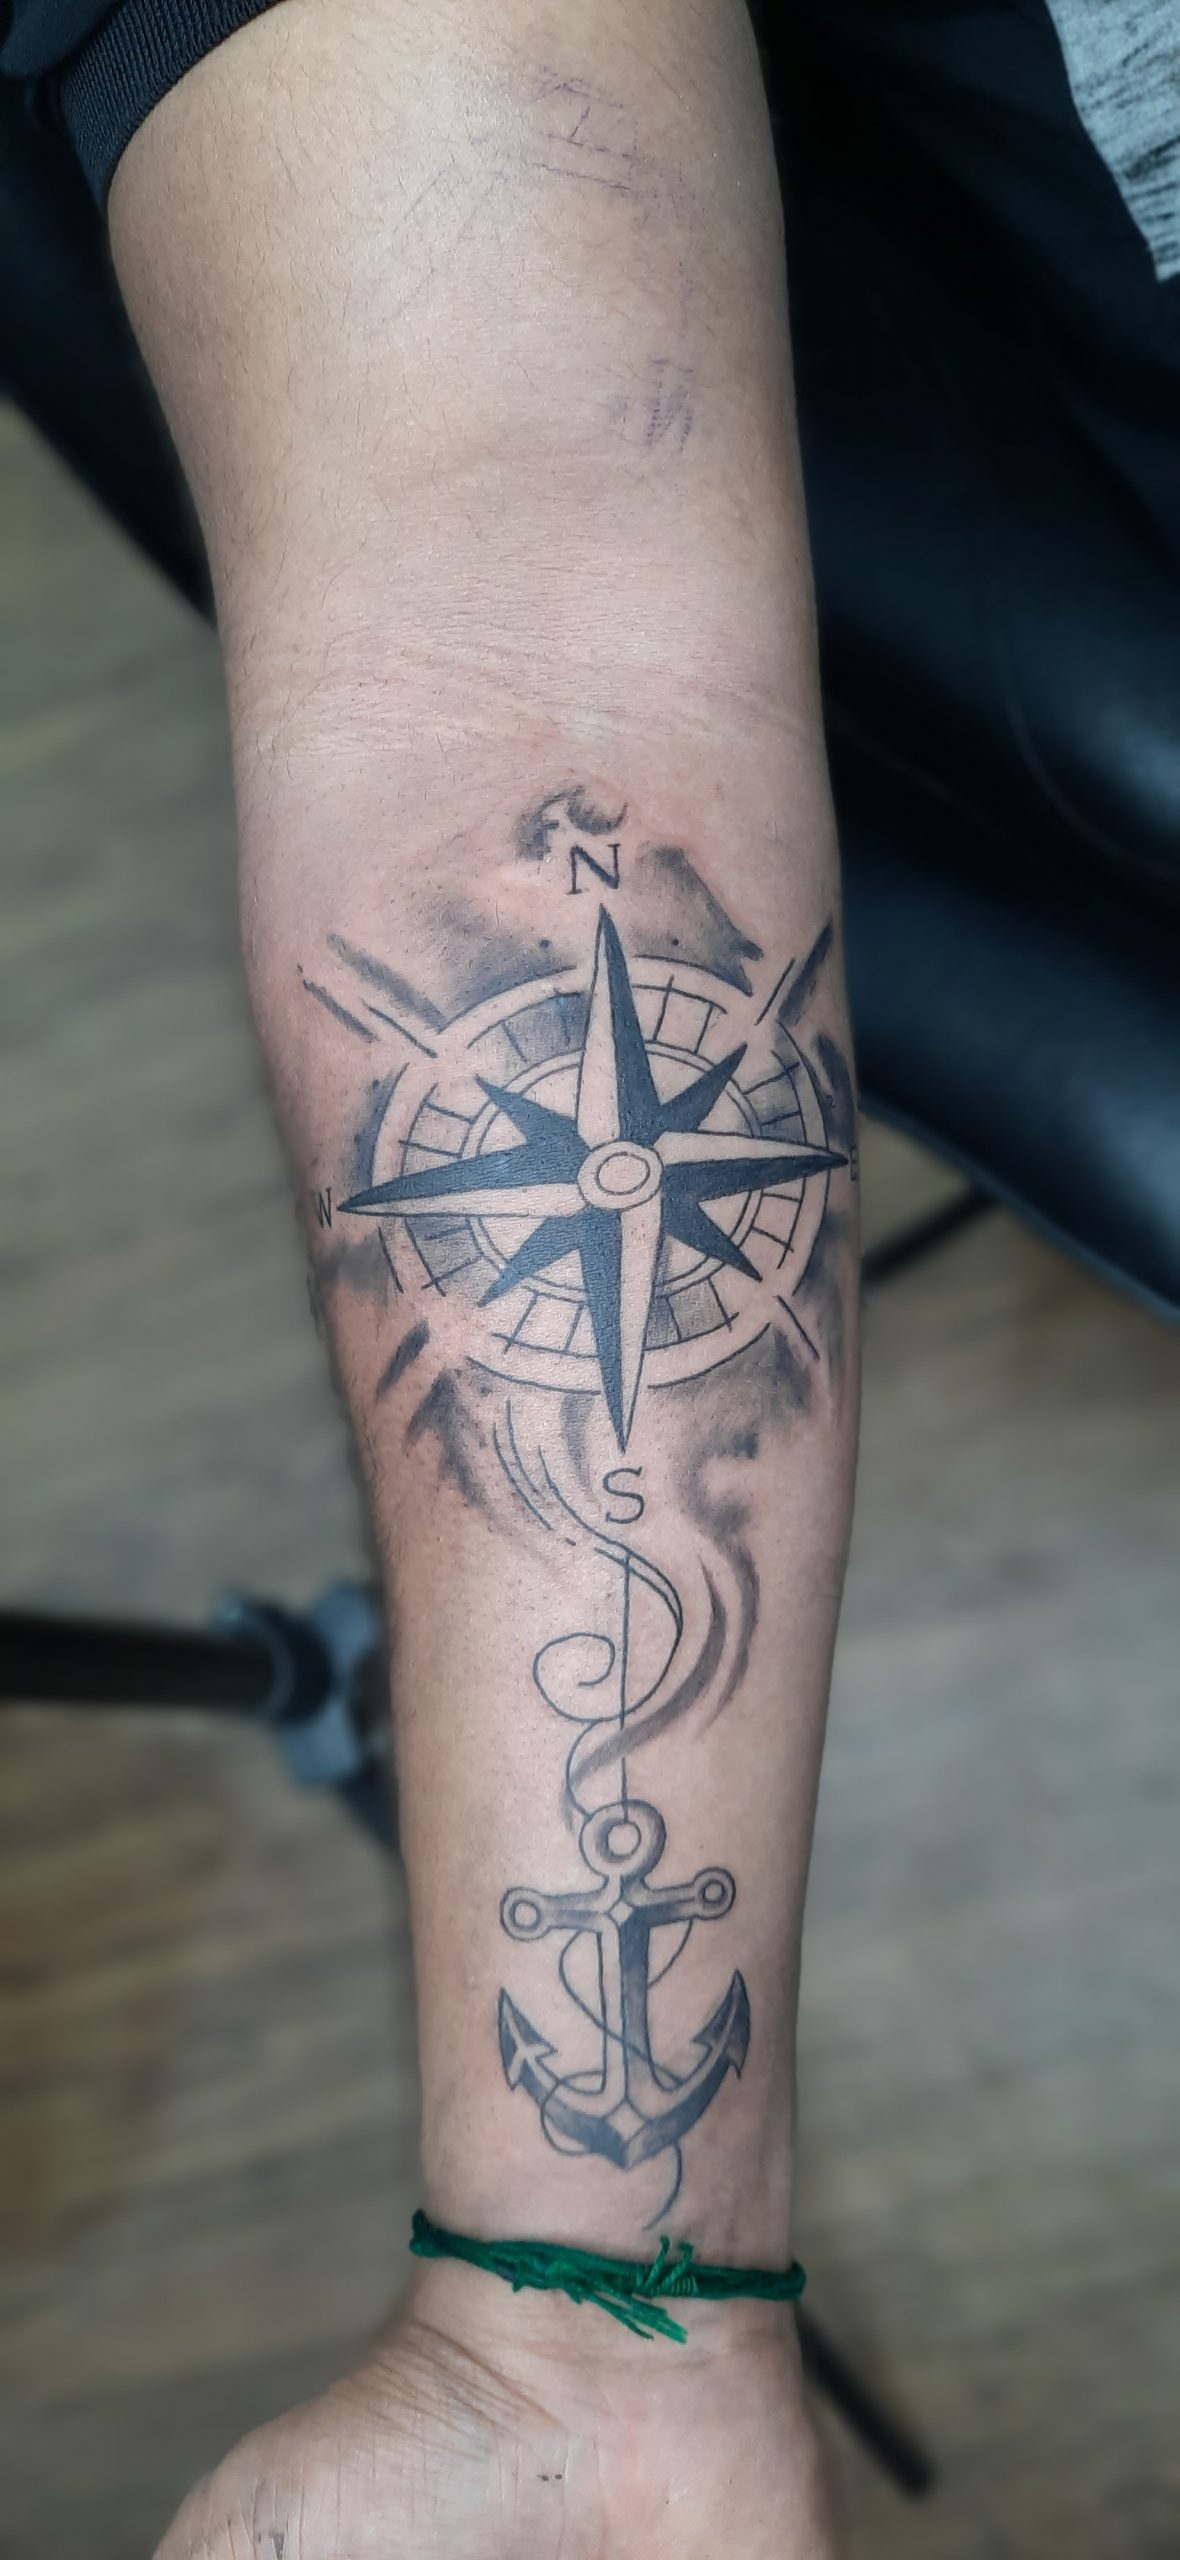 Forearm Tattoo | Tarazwa Tattoo & Body Piercing